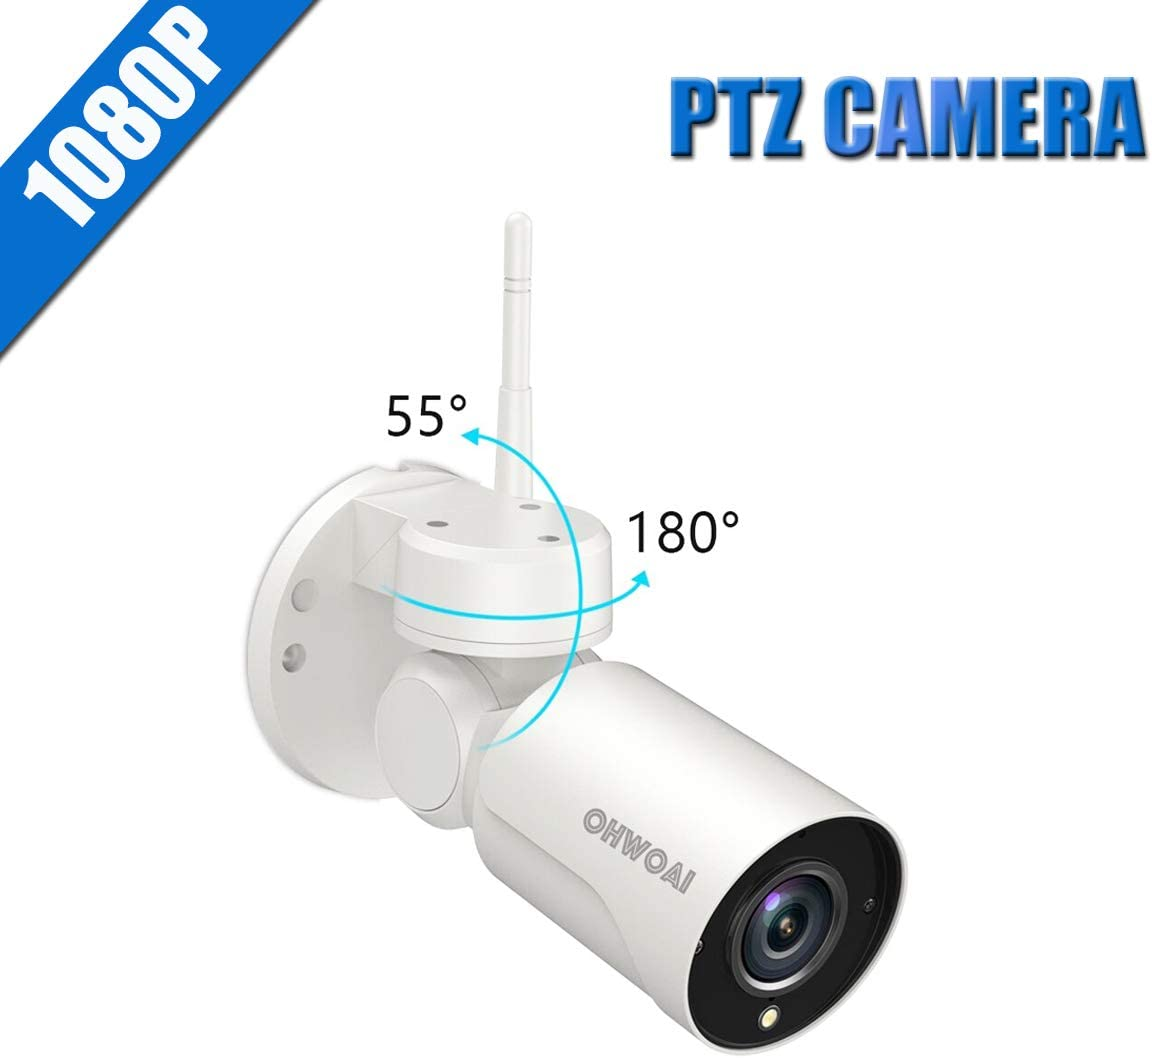 OHWOAI HD 1080P Wireless PTZ Camera,Wireless Zoom Tilt Pan Waterproof Security IP Camera,Worked for OHWOAI Wireless Security System.